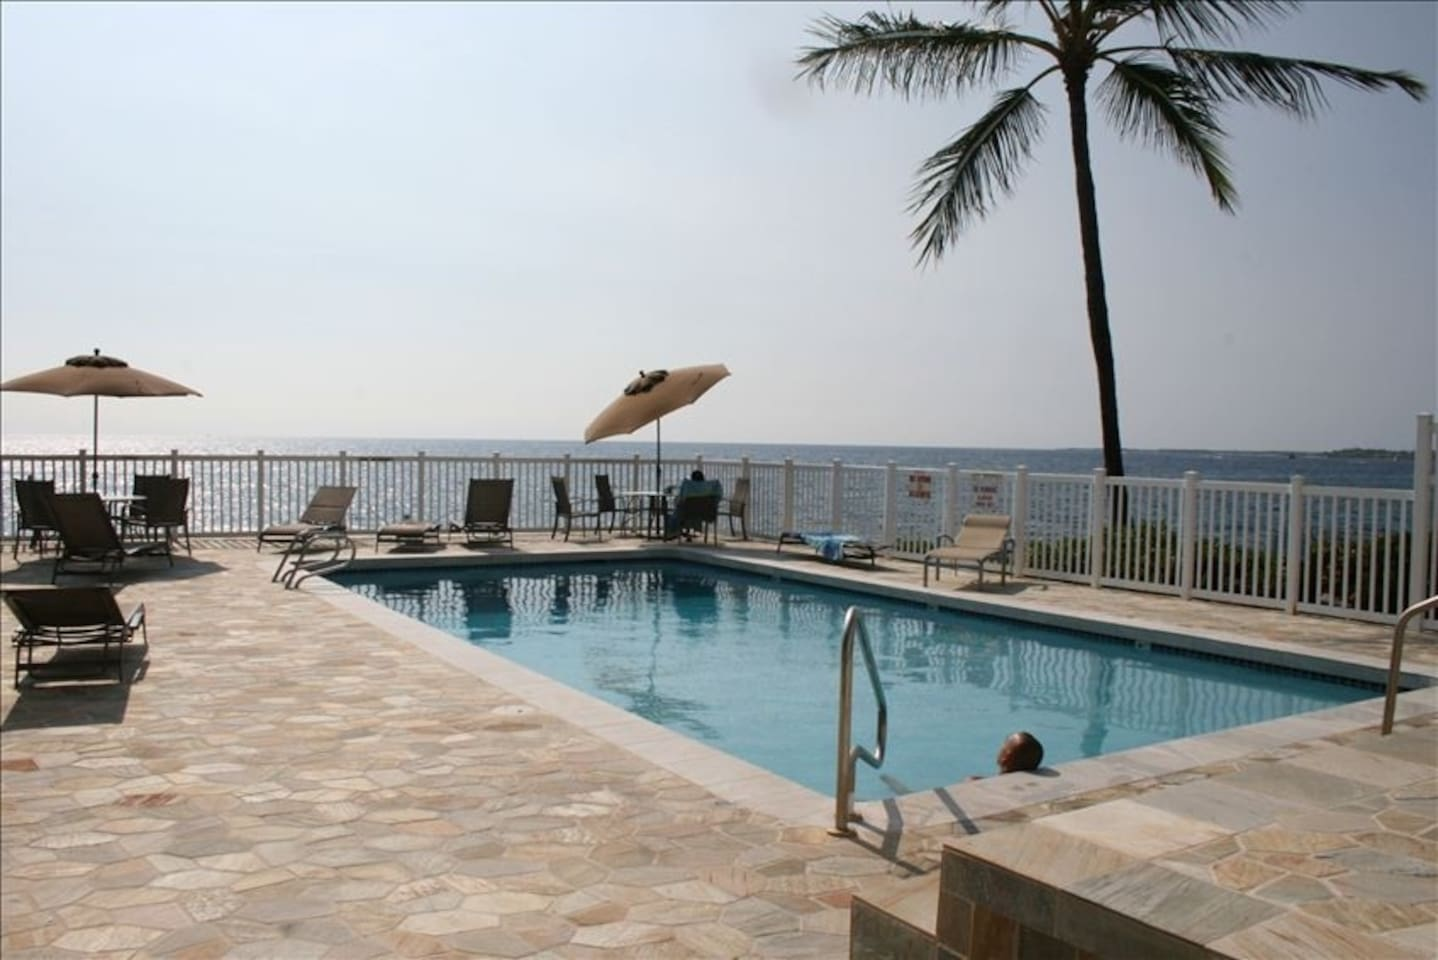 Ocean front pool - dolphin sightings common!